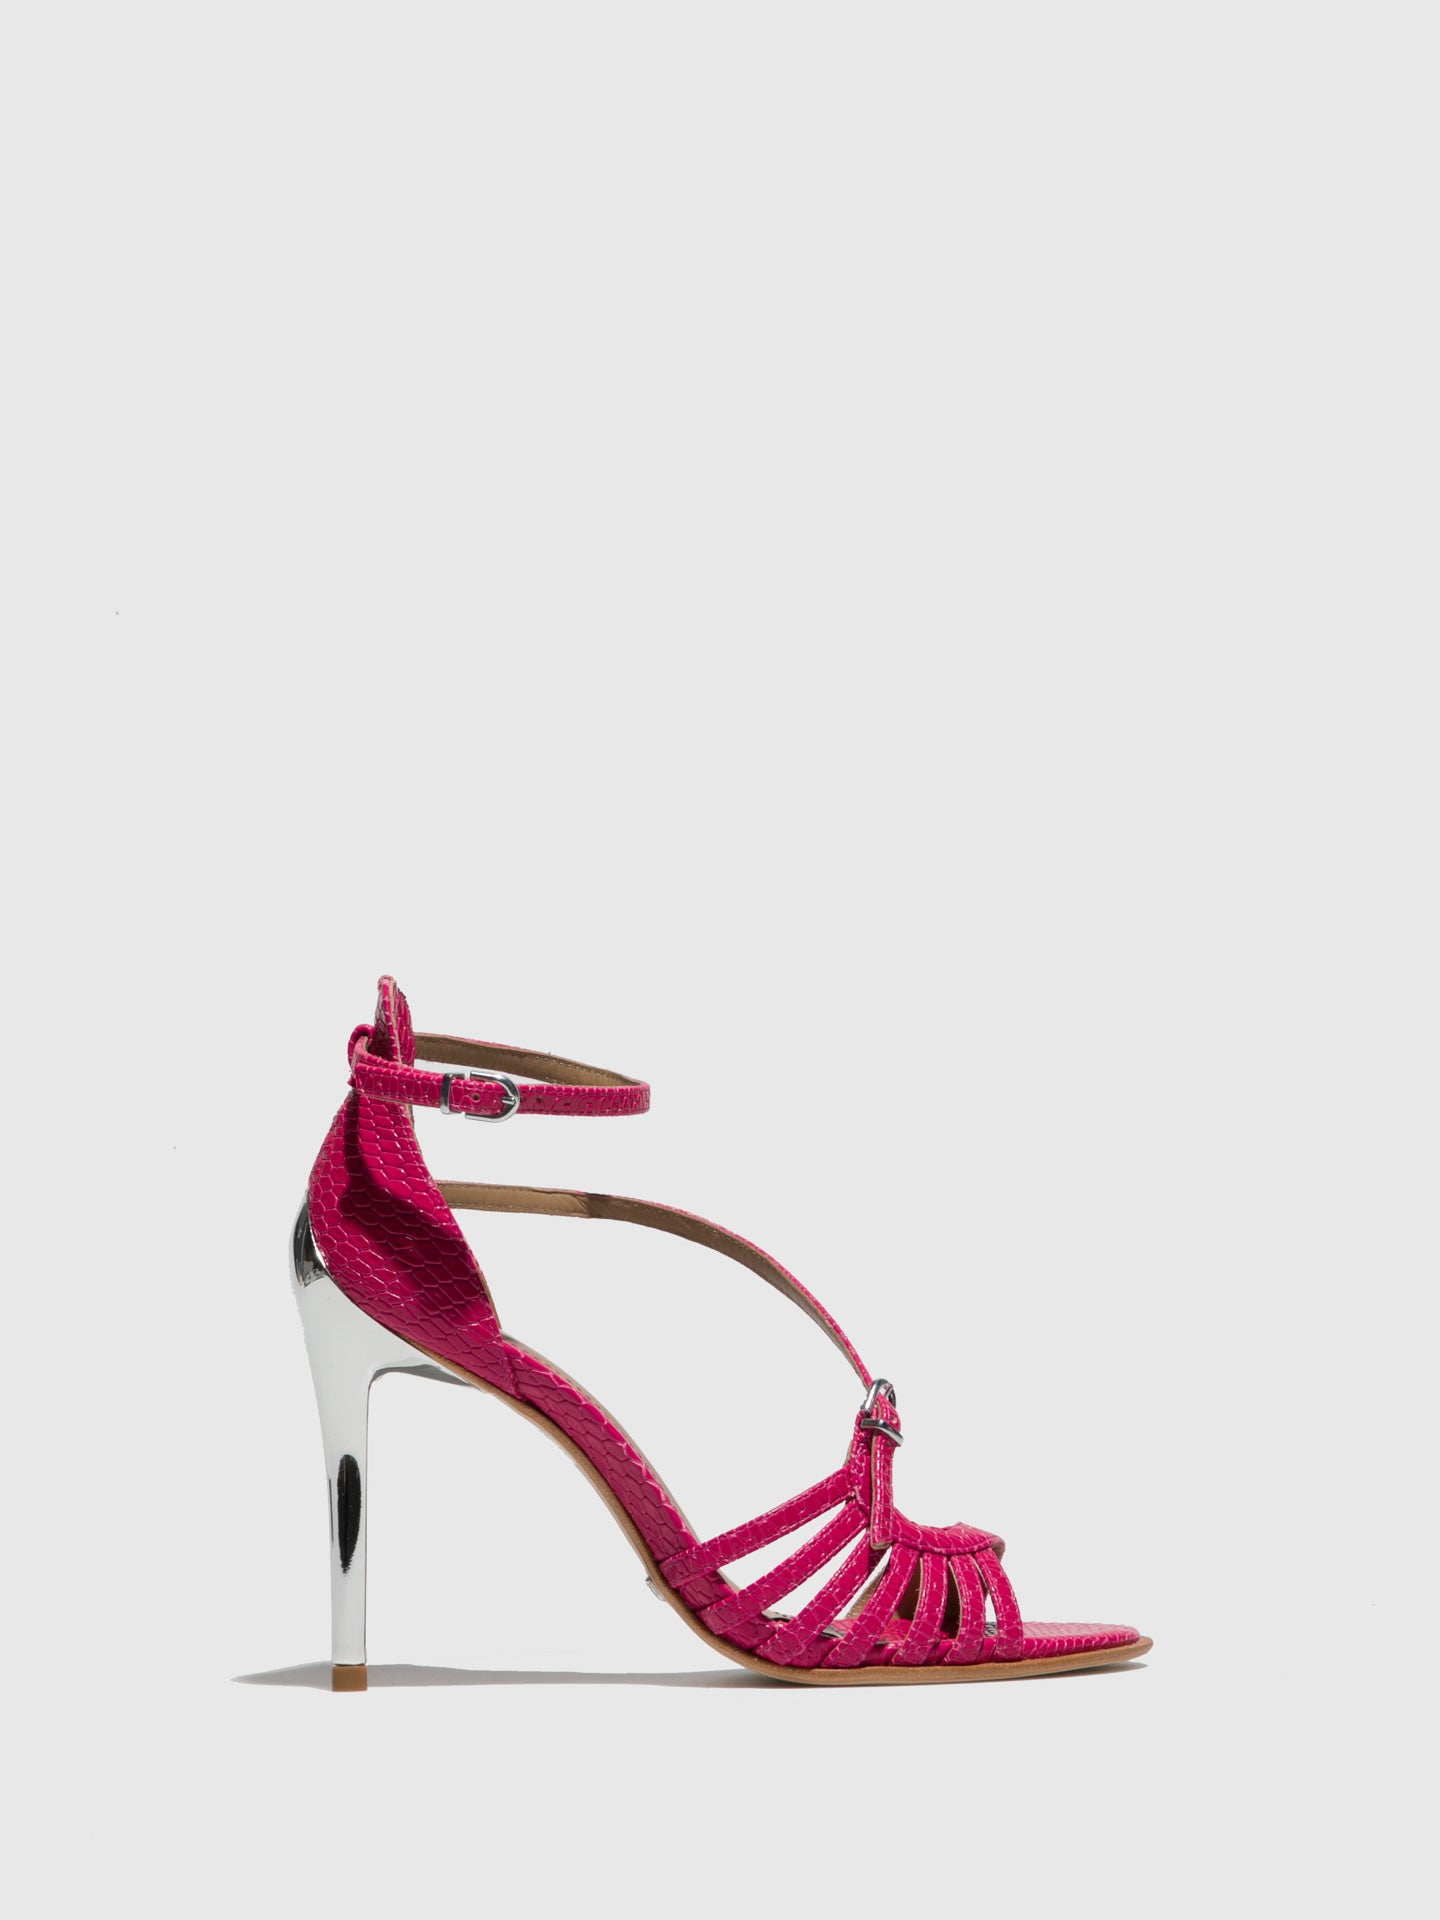 PARODI PASSION Pink Ankle Strap Sandals